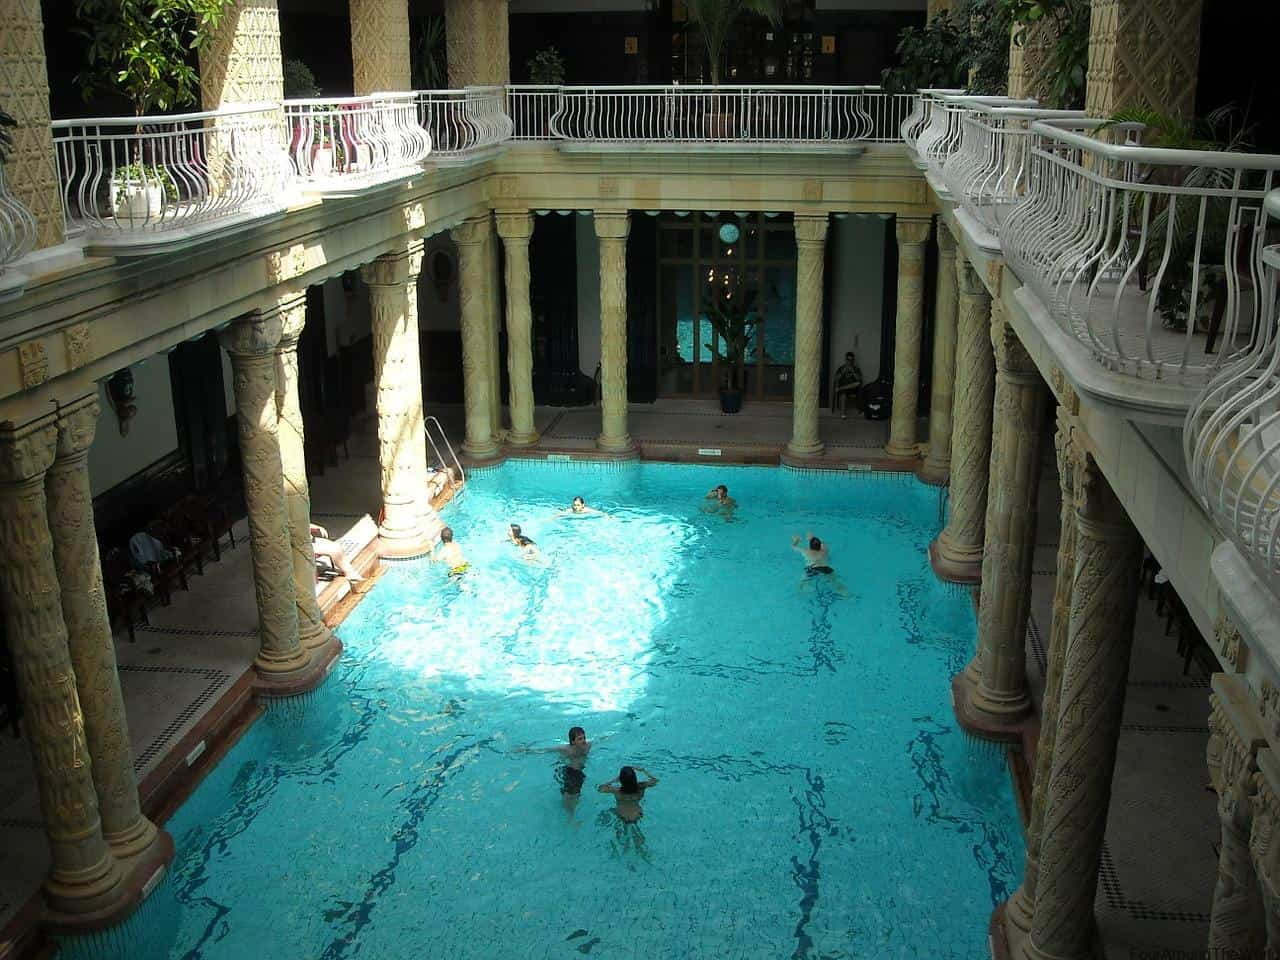 Visiting the budapest gellert baths with kids four around the world for Does buckingham palace have a swimming pool